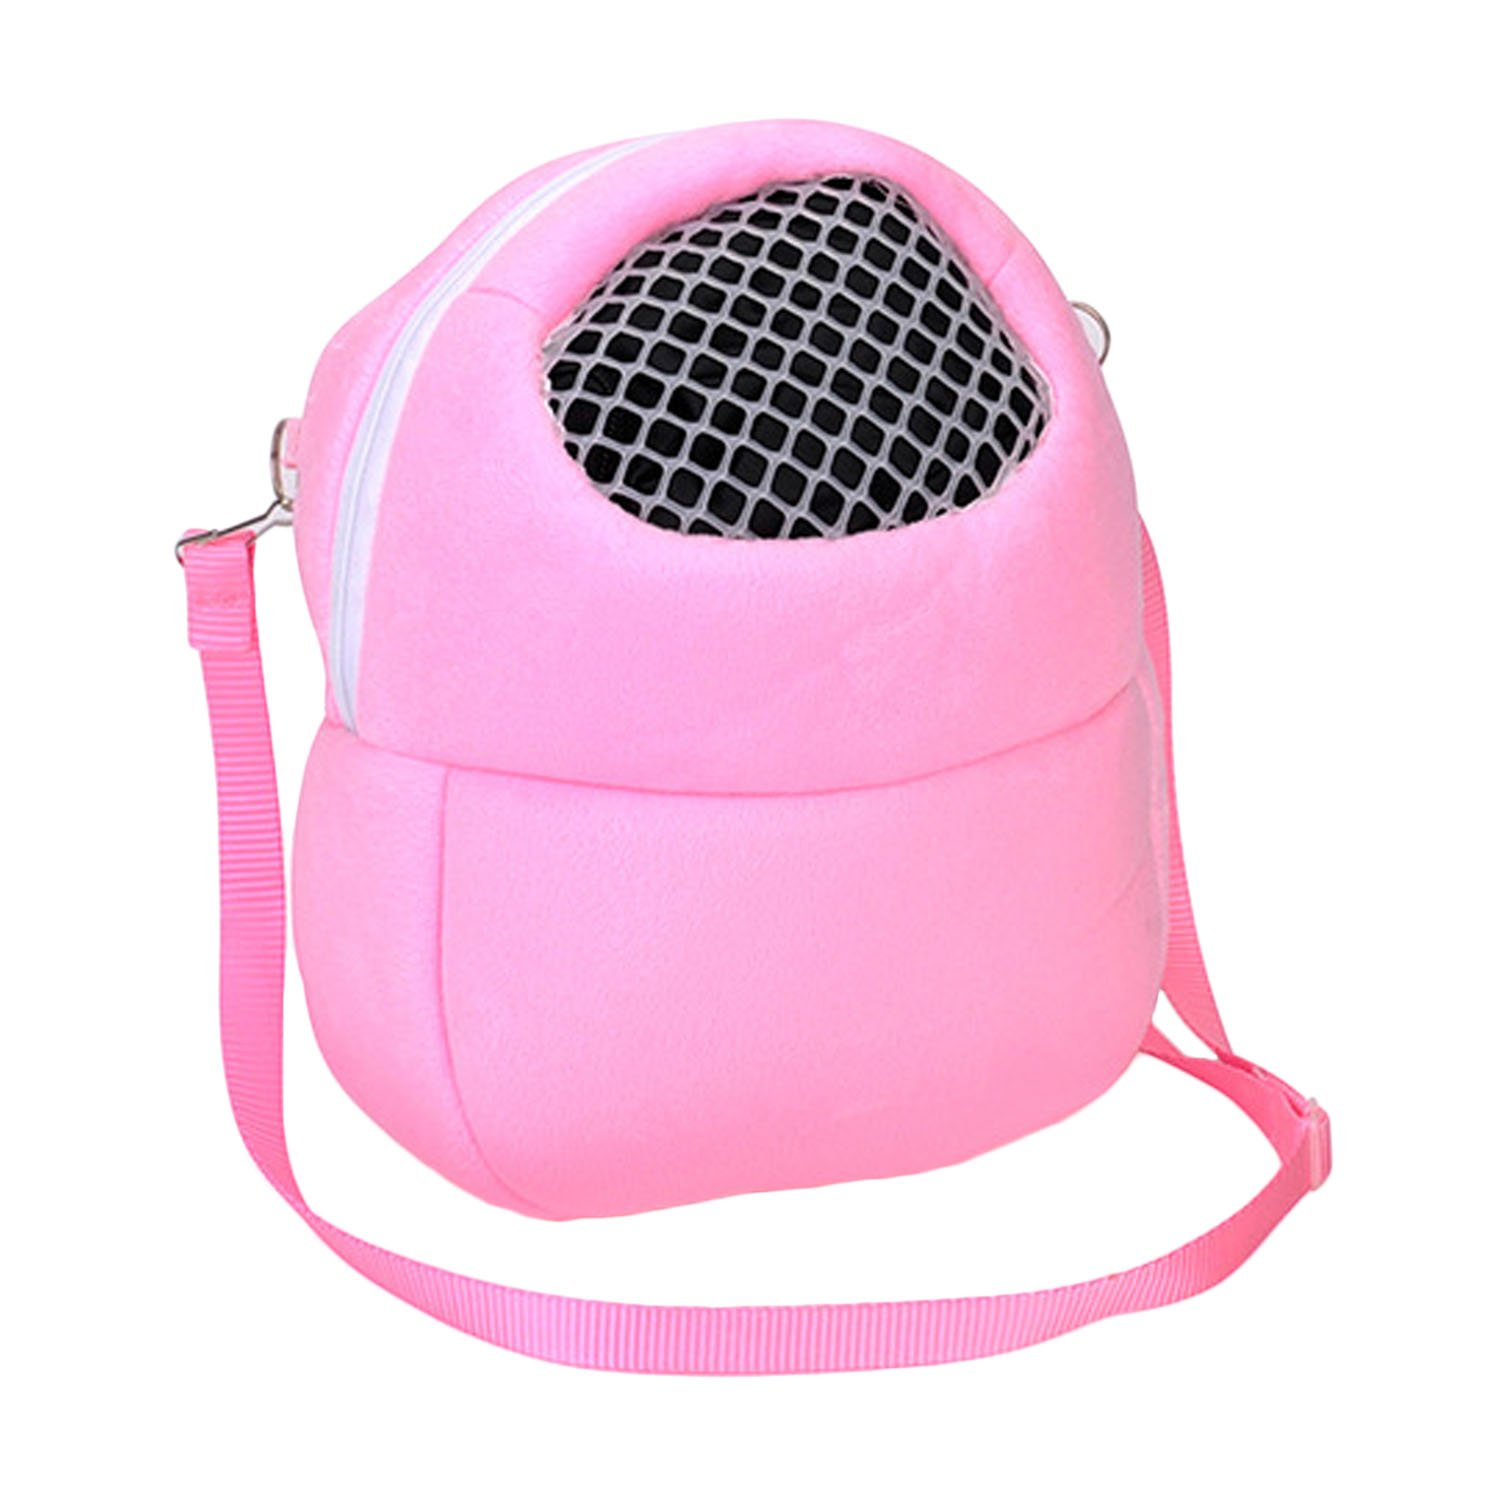 Elisona-Pet Carrier Bags, Large Portable Outgoing Breathable Hedgehog Hamster Carrier Bags, Small Pet Travel Shoulder Pet Bag £¨Medium pink£©